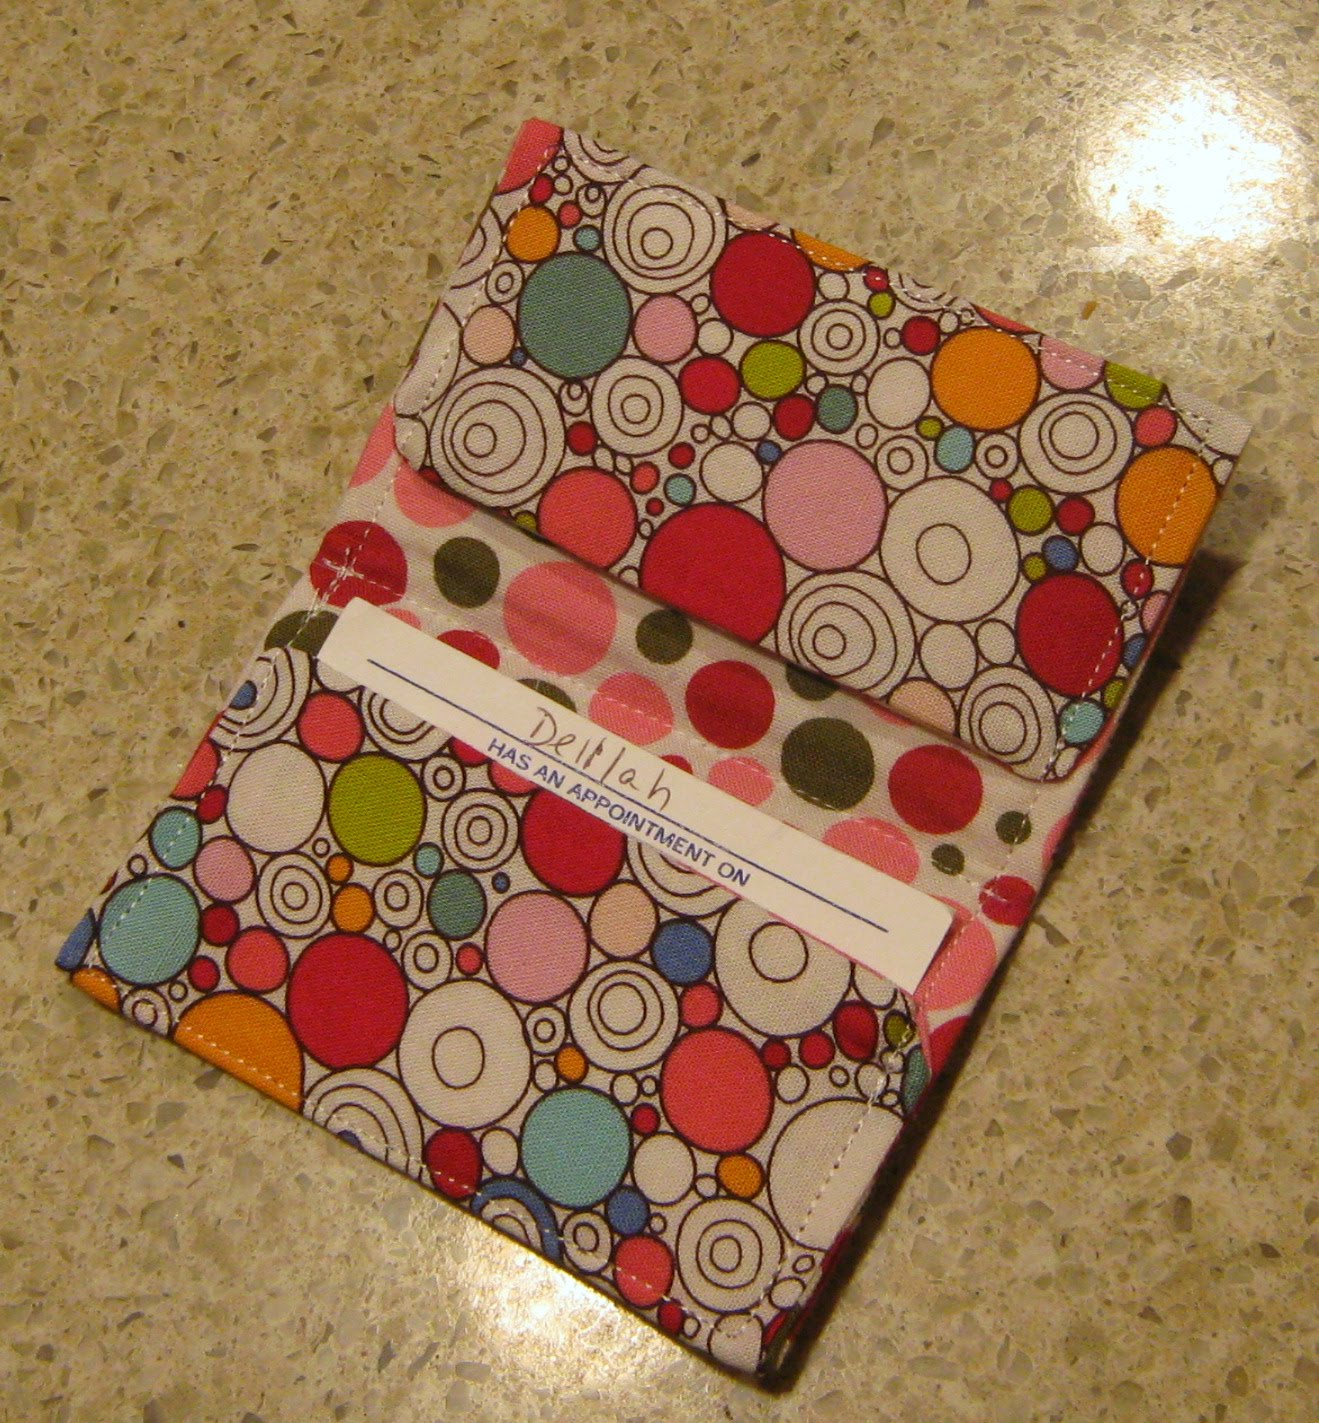 Delilah\'s Momma - Work, Play, Eat!: Fabric Business / Gift Card Holder